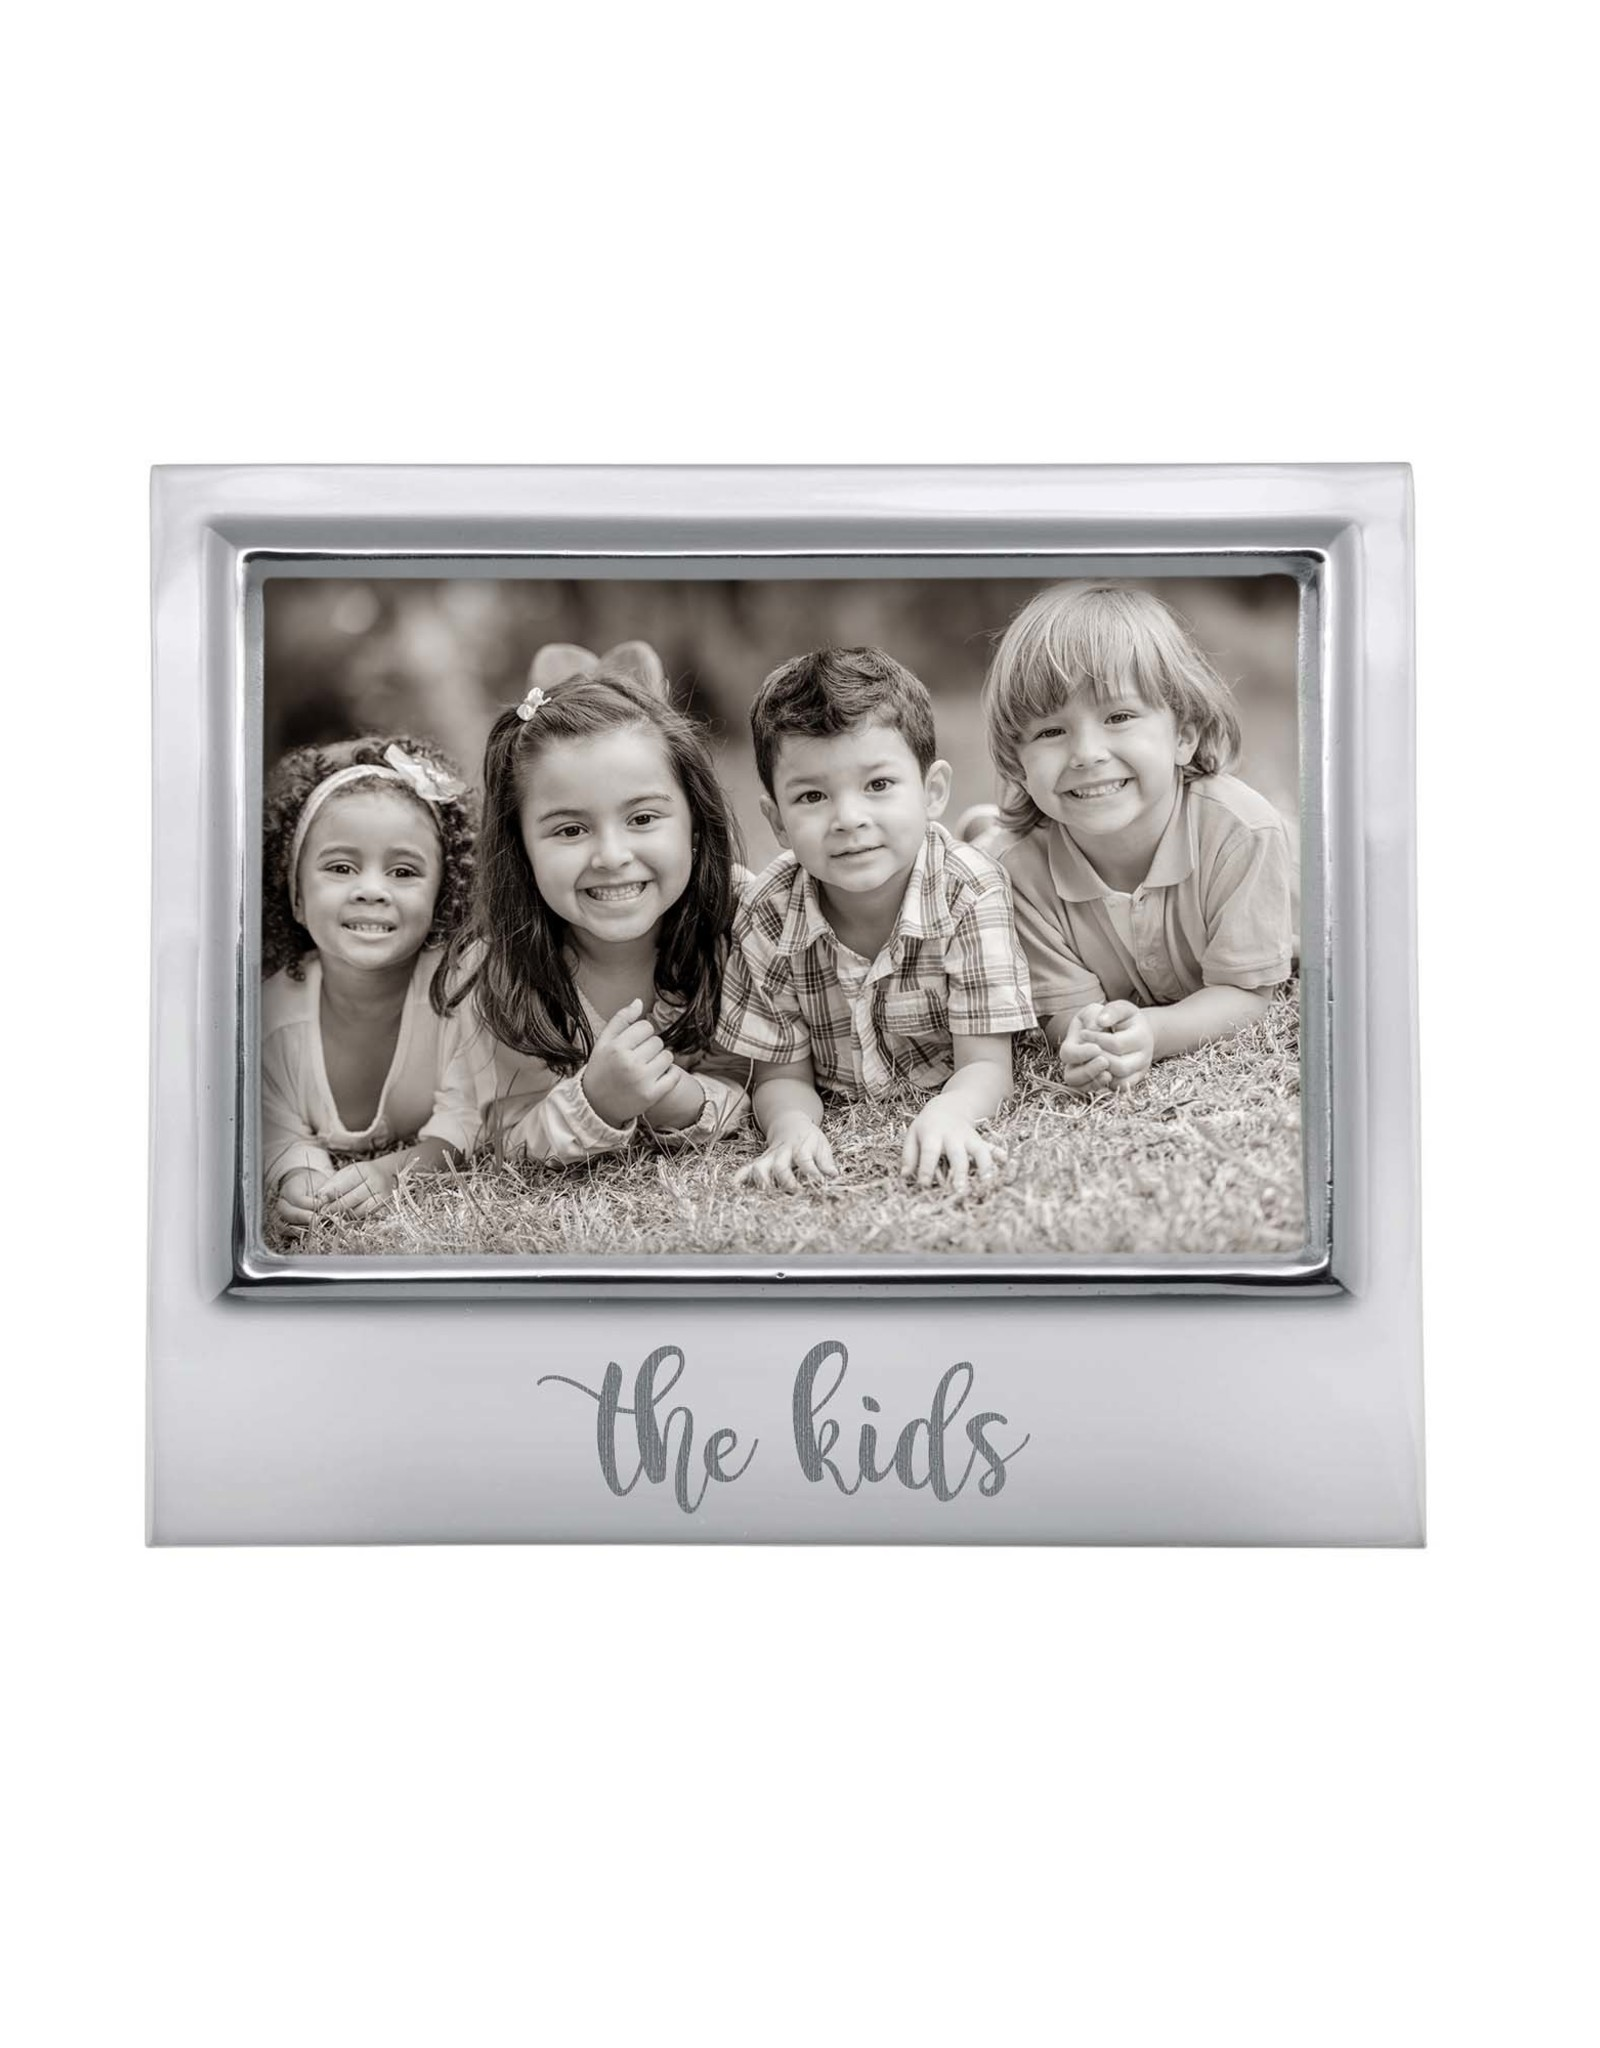 Mariposa The Kids Signature Frame 4x6